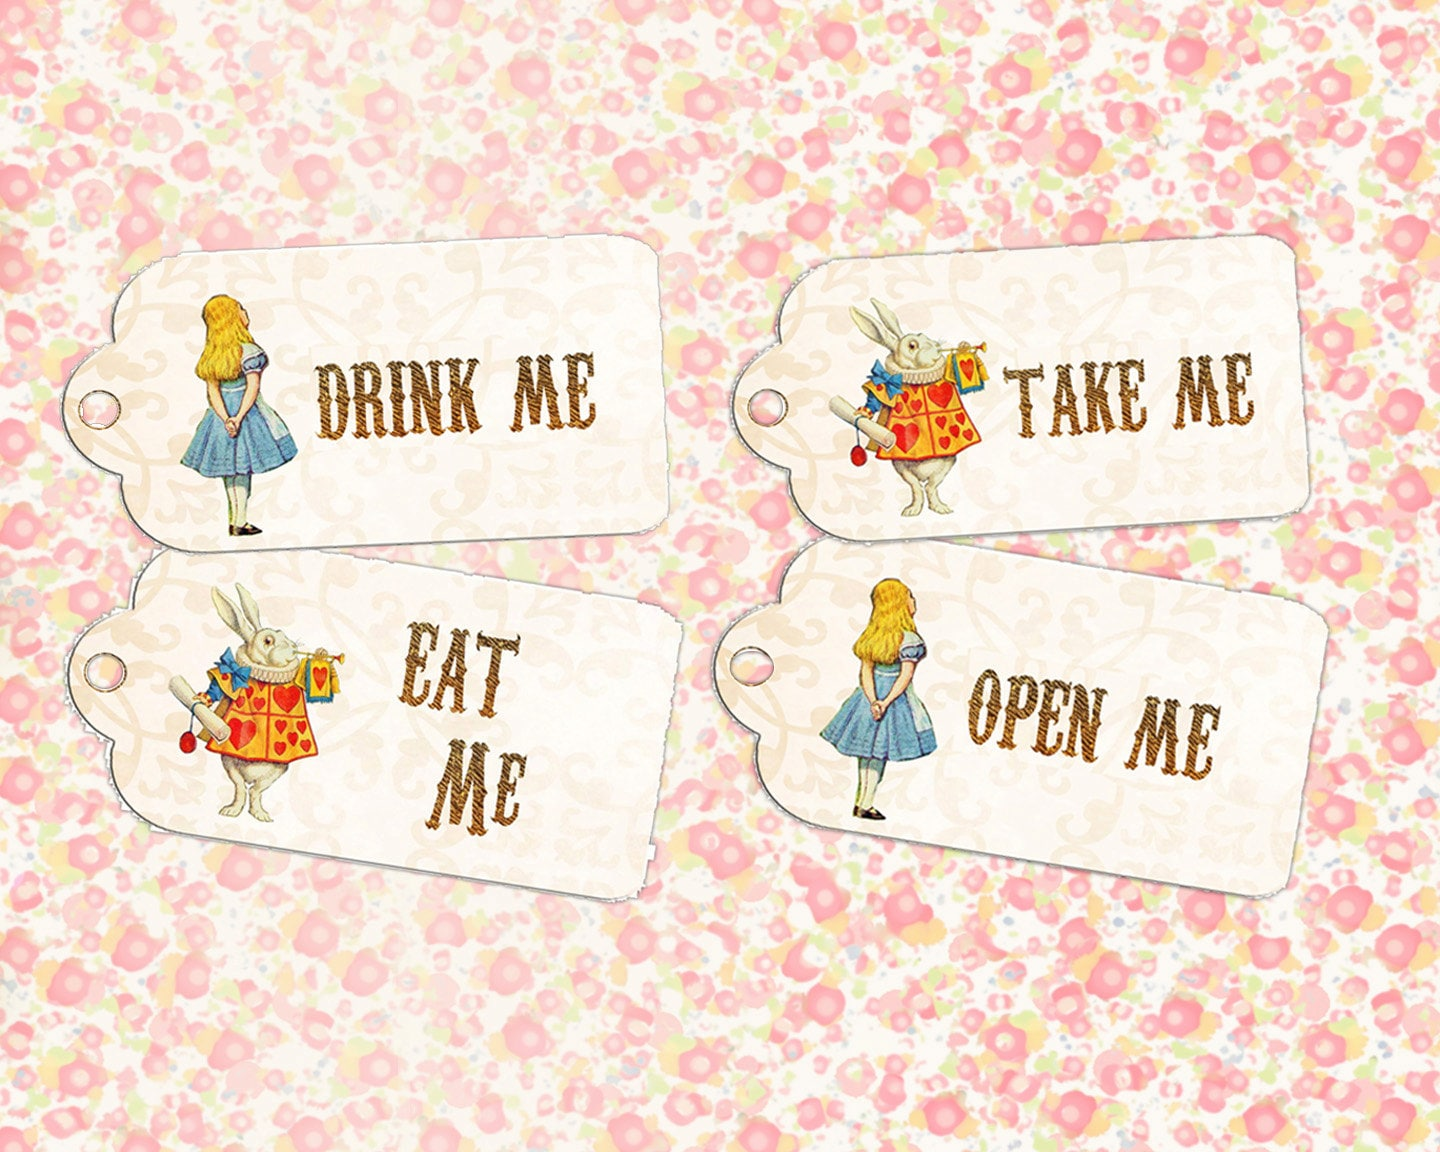 Alice In Wonderland Birthday Party Eat Me Drink Tags First Invitation White Rabbit Queen Of Hearts Mad Hatter Digital